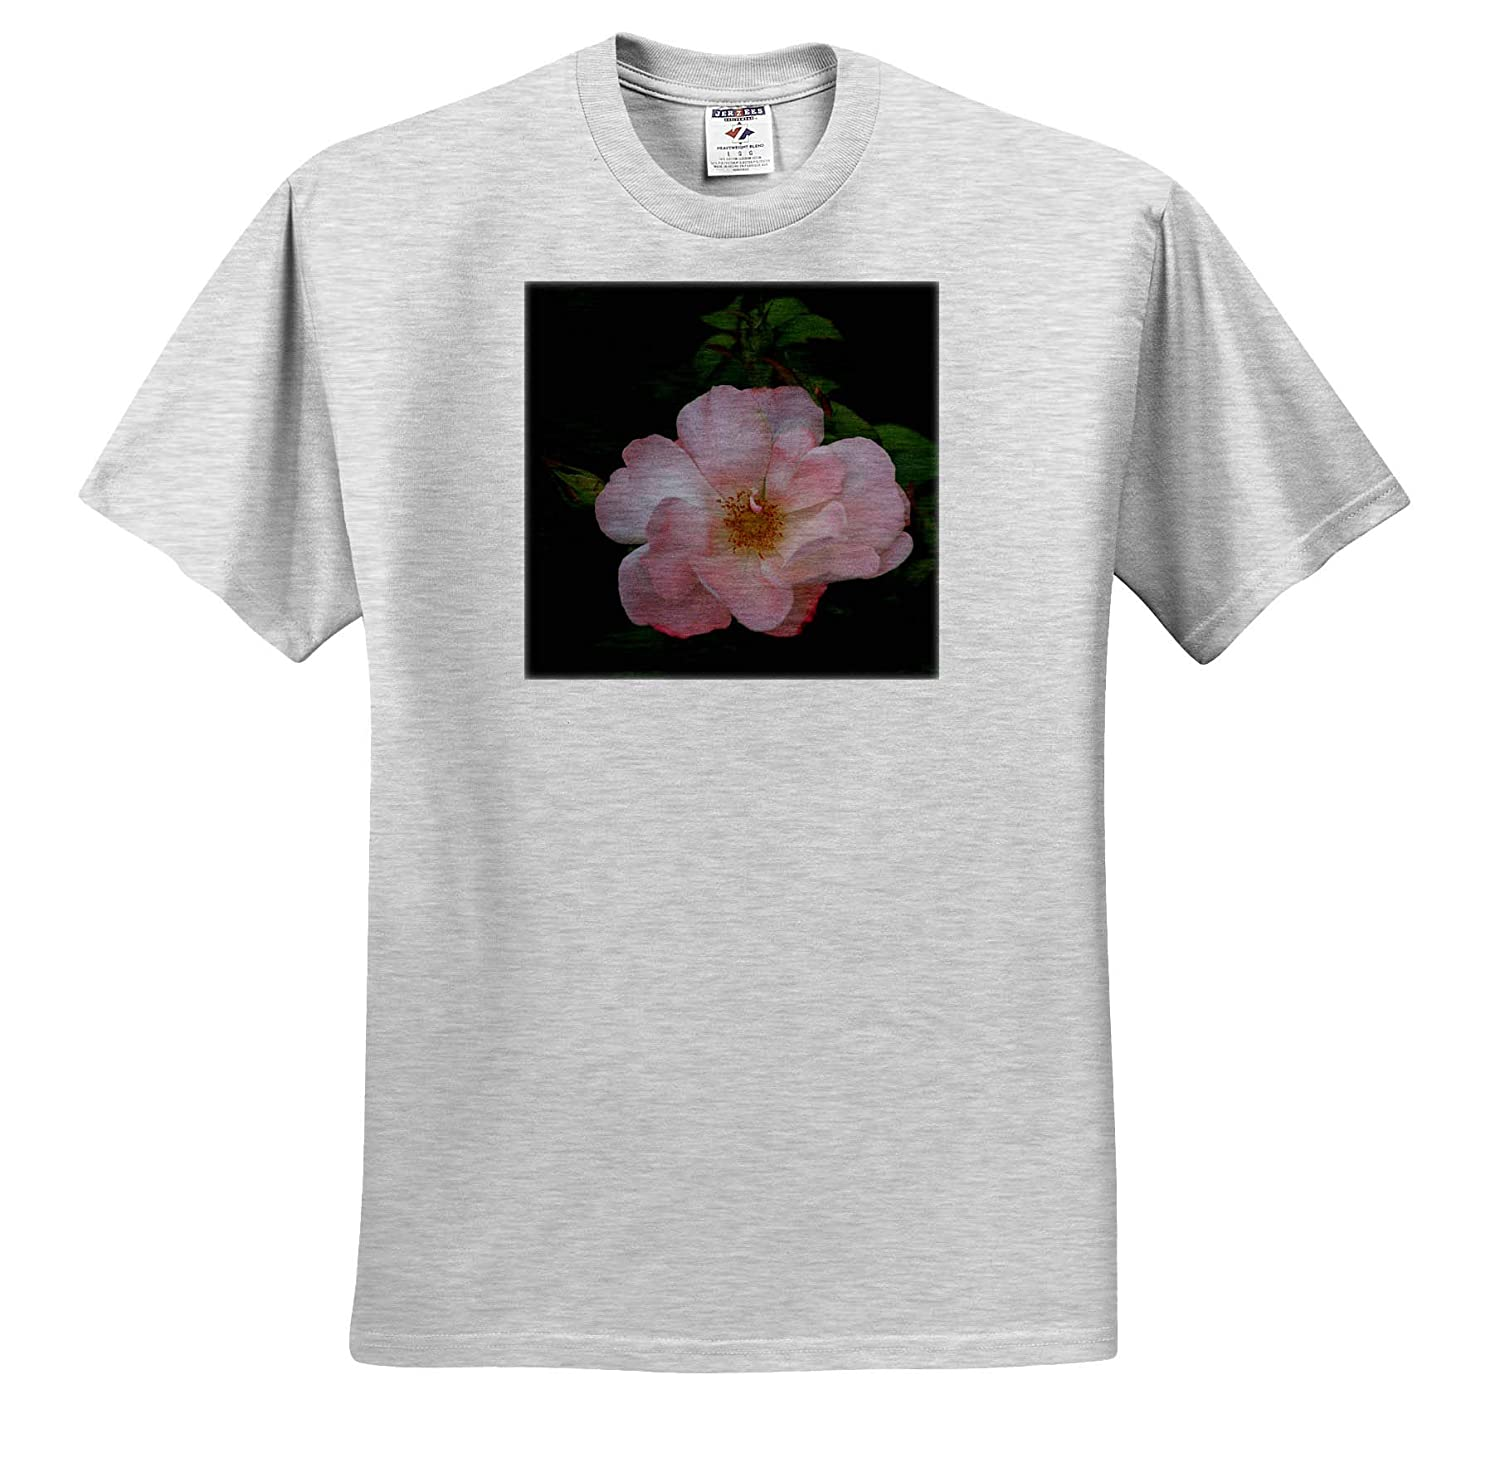 3dRose Stamp City Flowers Photograph of a Beautiful Pink Rose in Full Bloom - T-Shirts